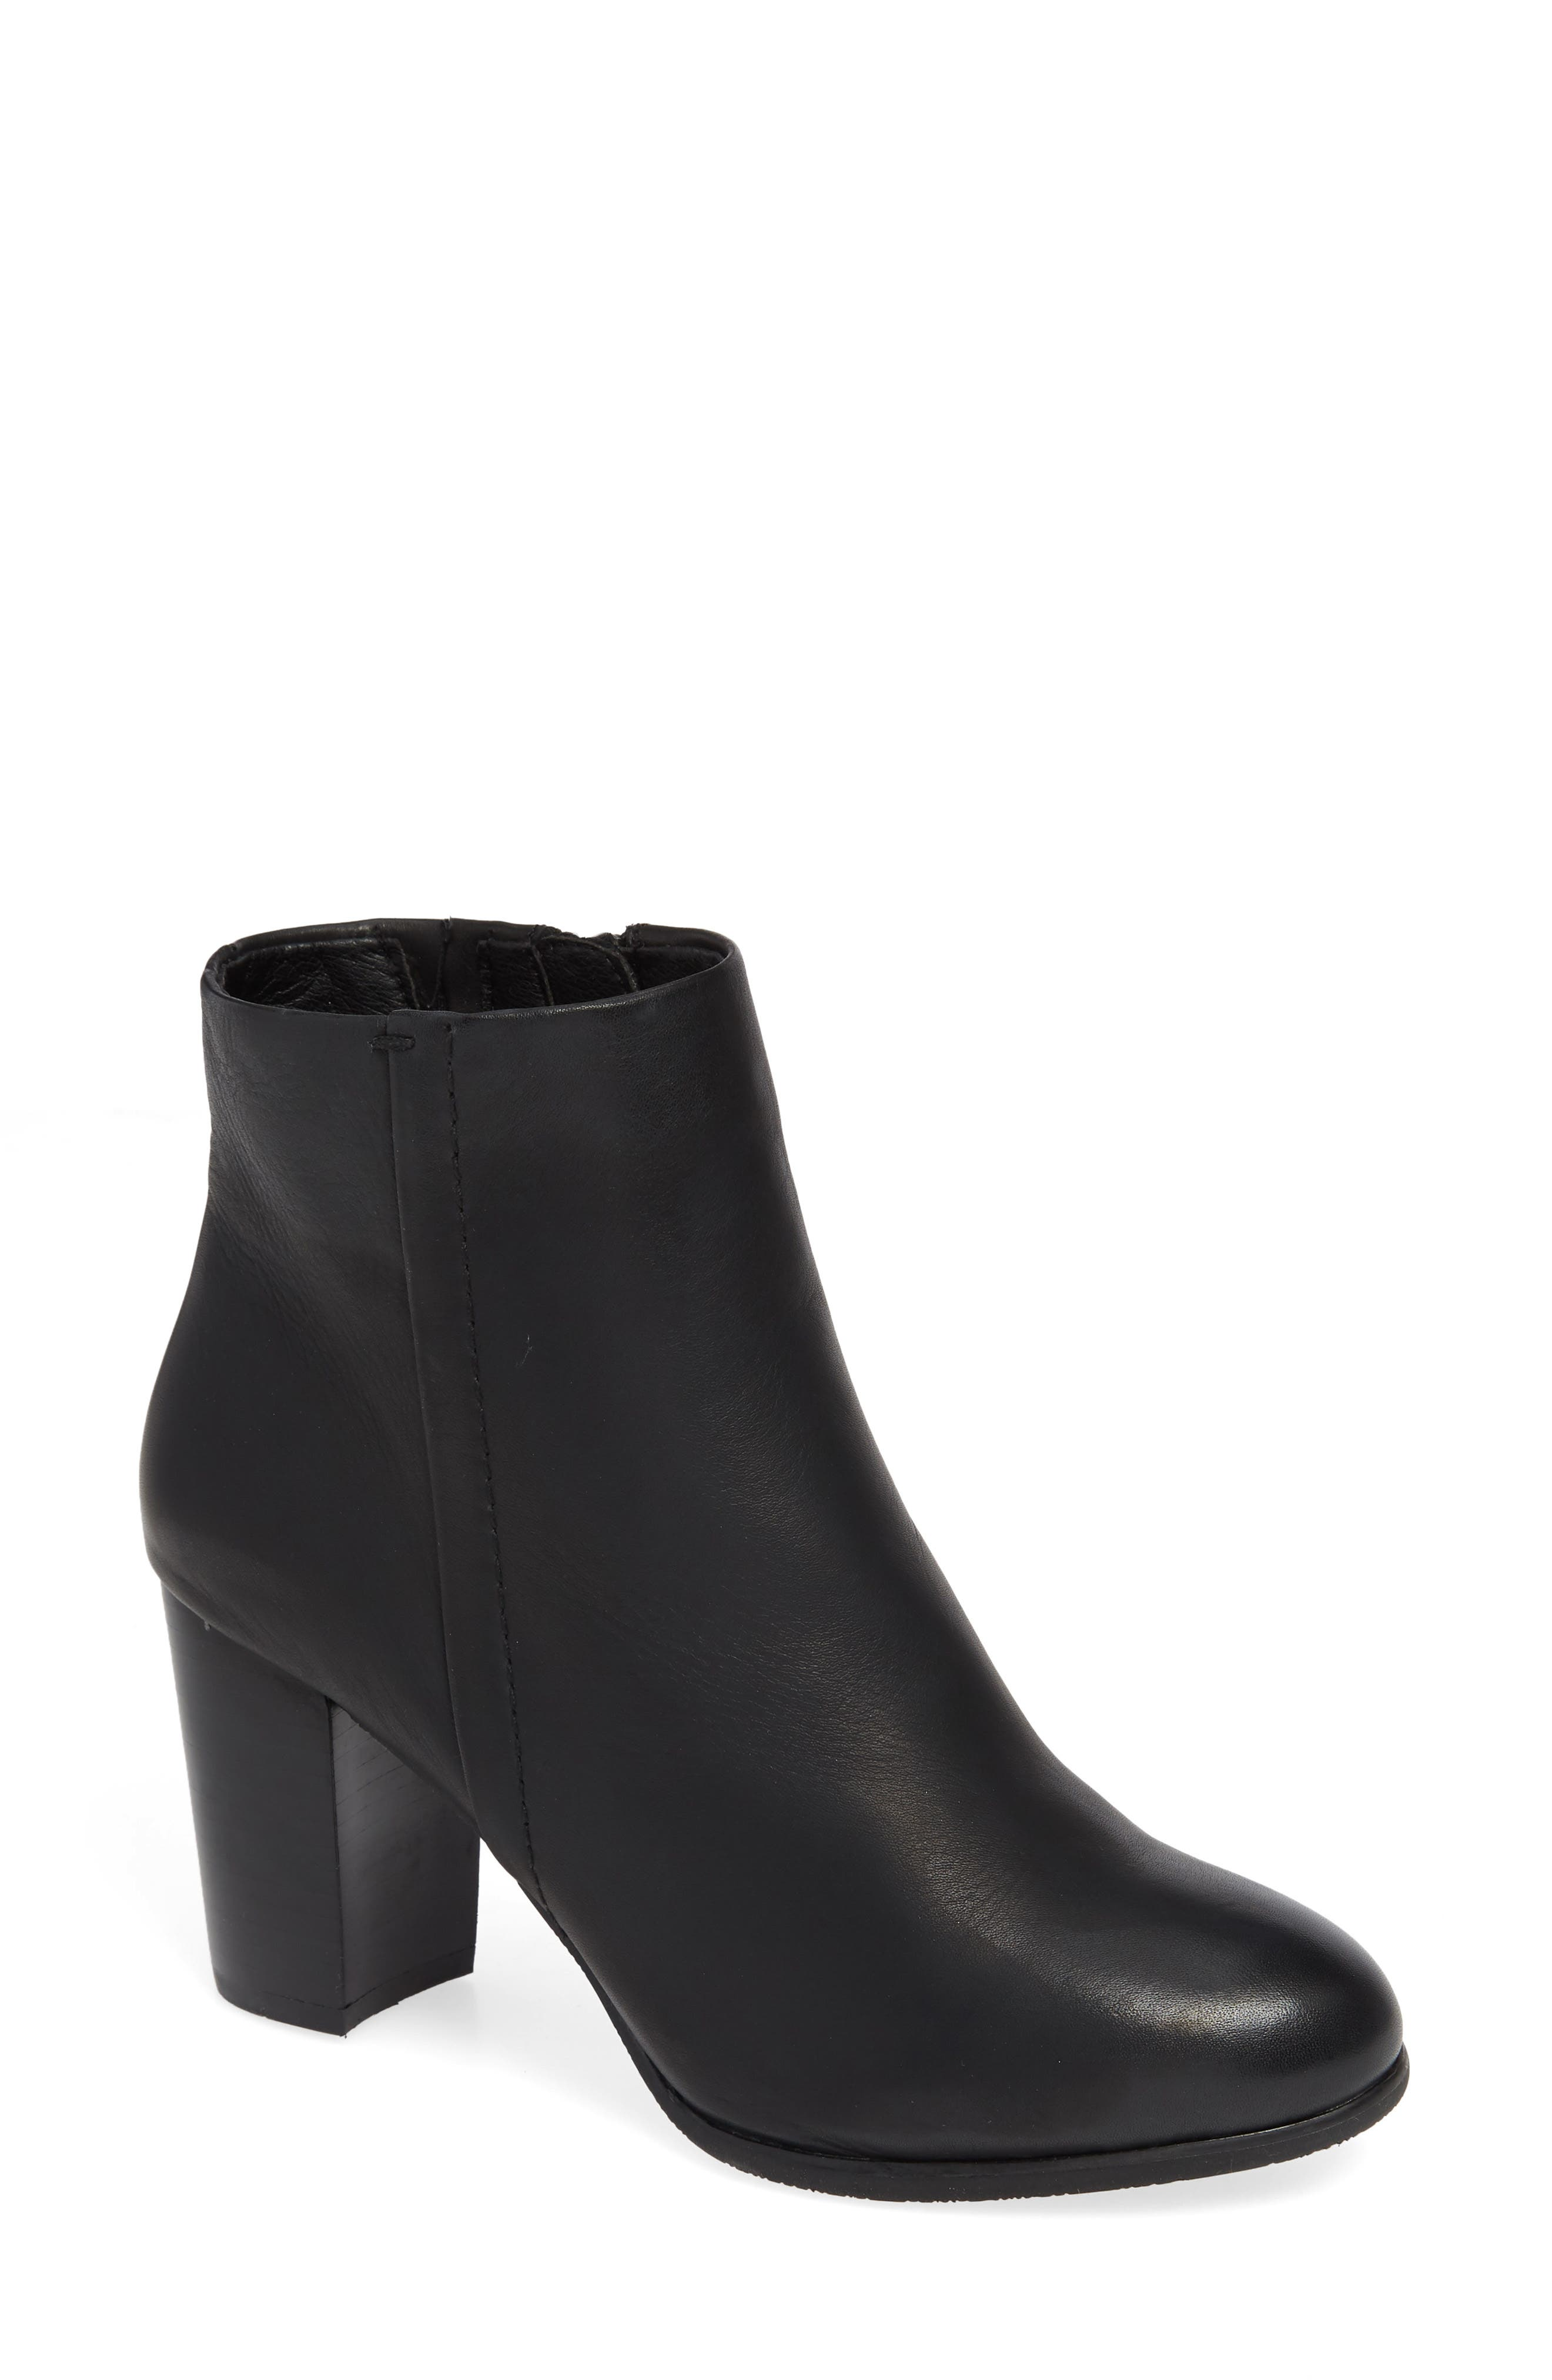 VIONIC,                             Kennedy Ankle Bootie,                             Main thumbnail 1, color,                             BLACK LEATHER